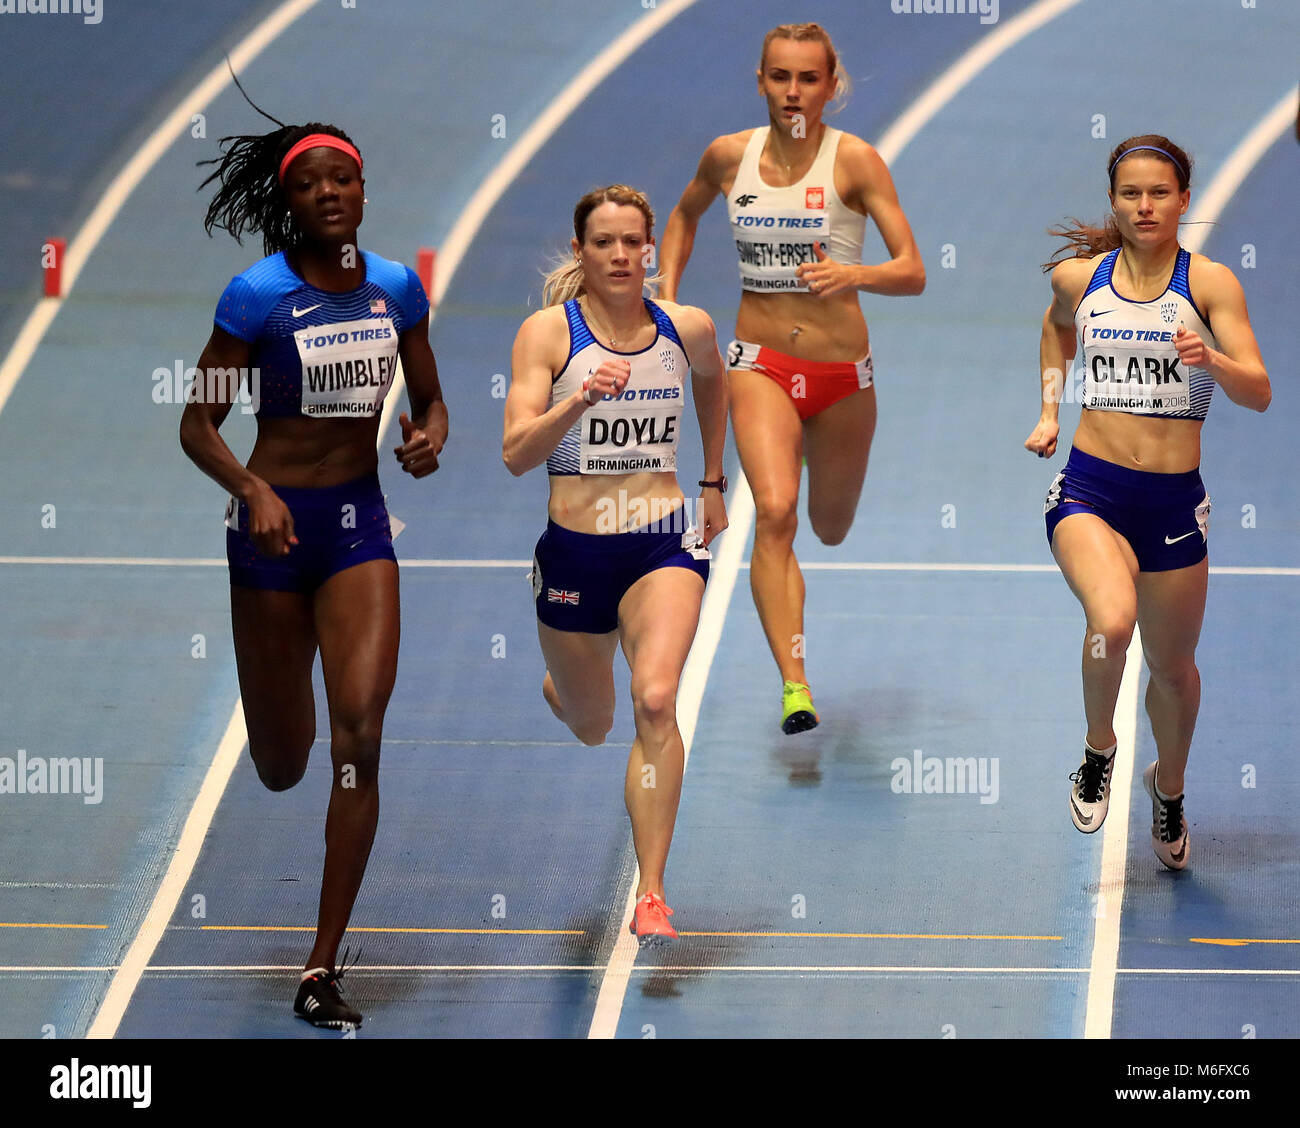 Great Britain's Zoey Clark (right) and Eilidh Doyle (second left) during the Women's 400m Final during day - Stock Image